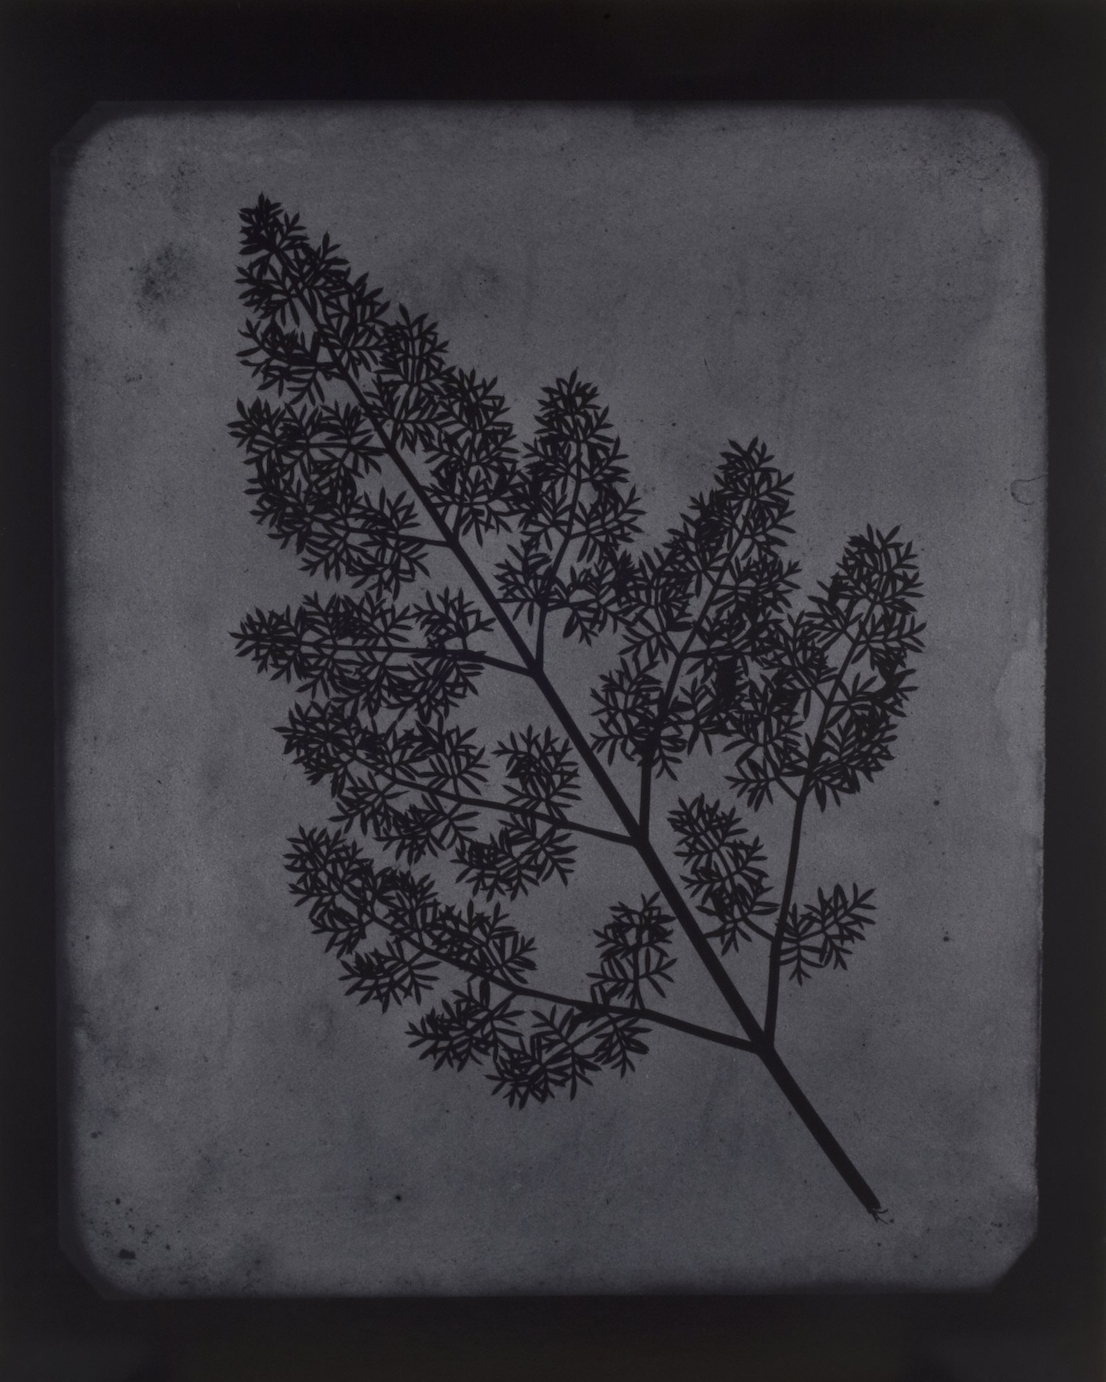 Hiroshi Sugimoto, A Stem of Delicate Leaves of an Umbrellifer, circa 1843–1846, 2009